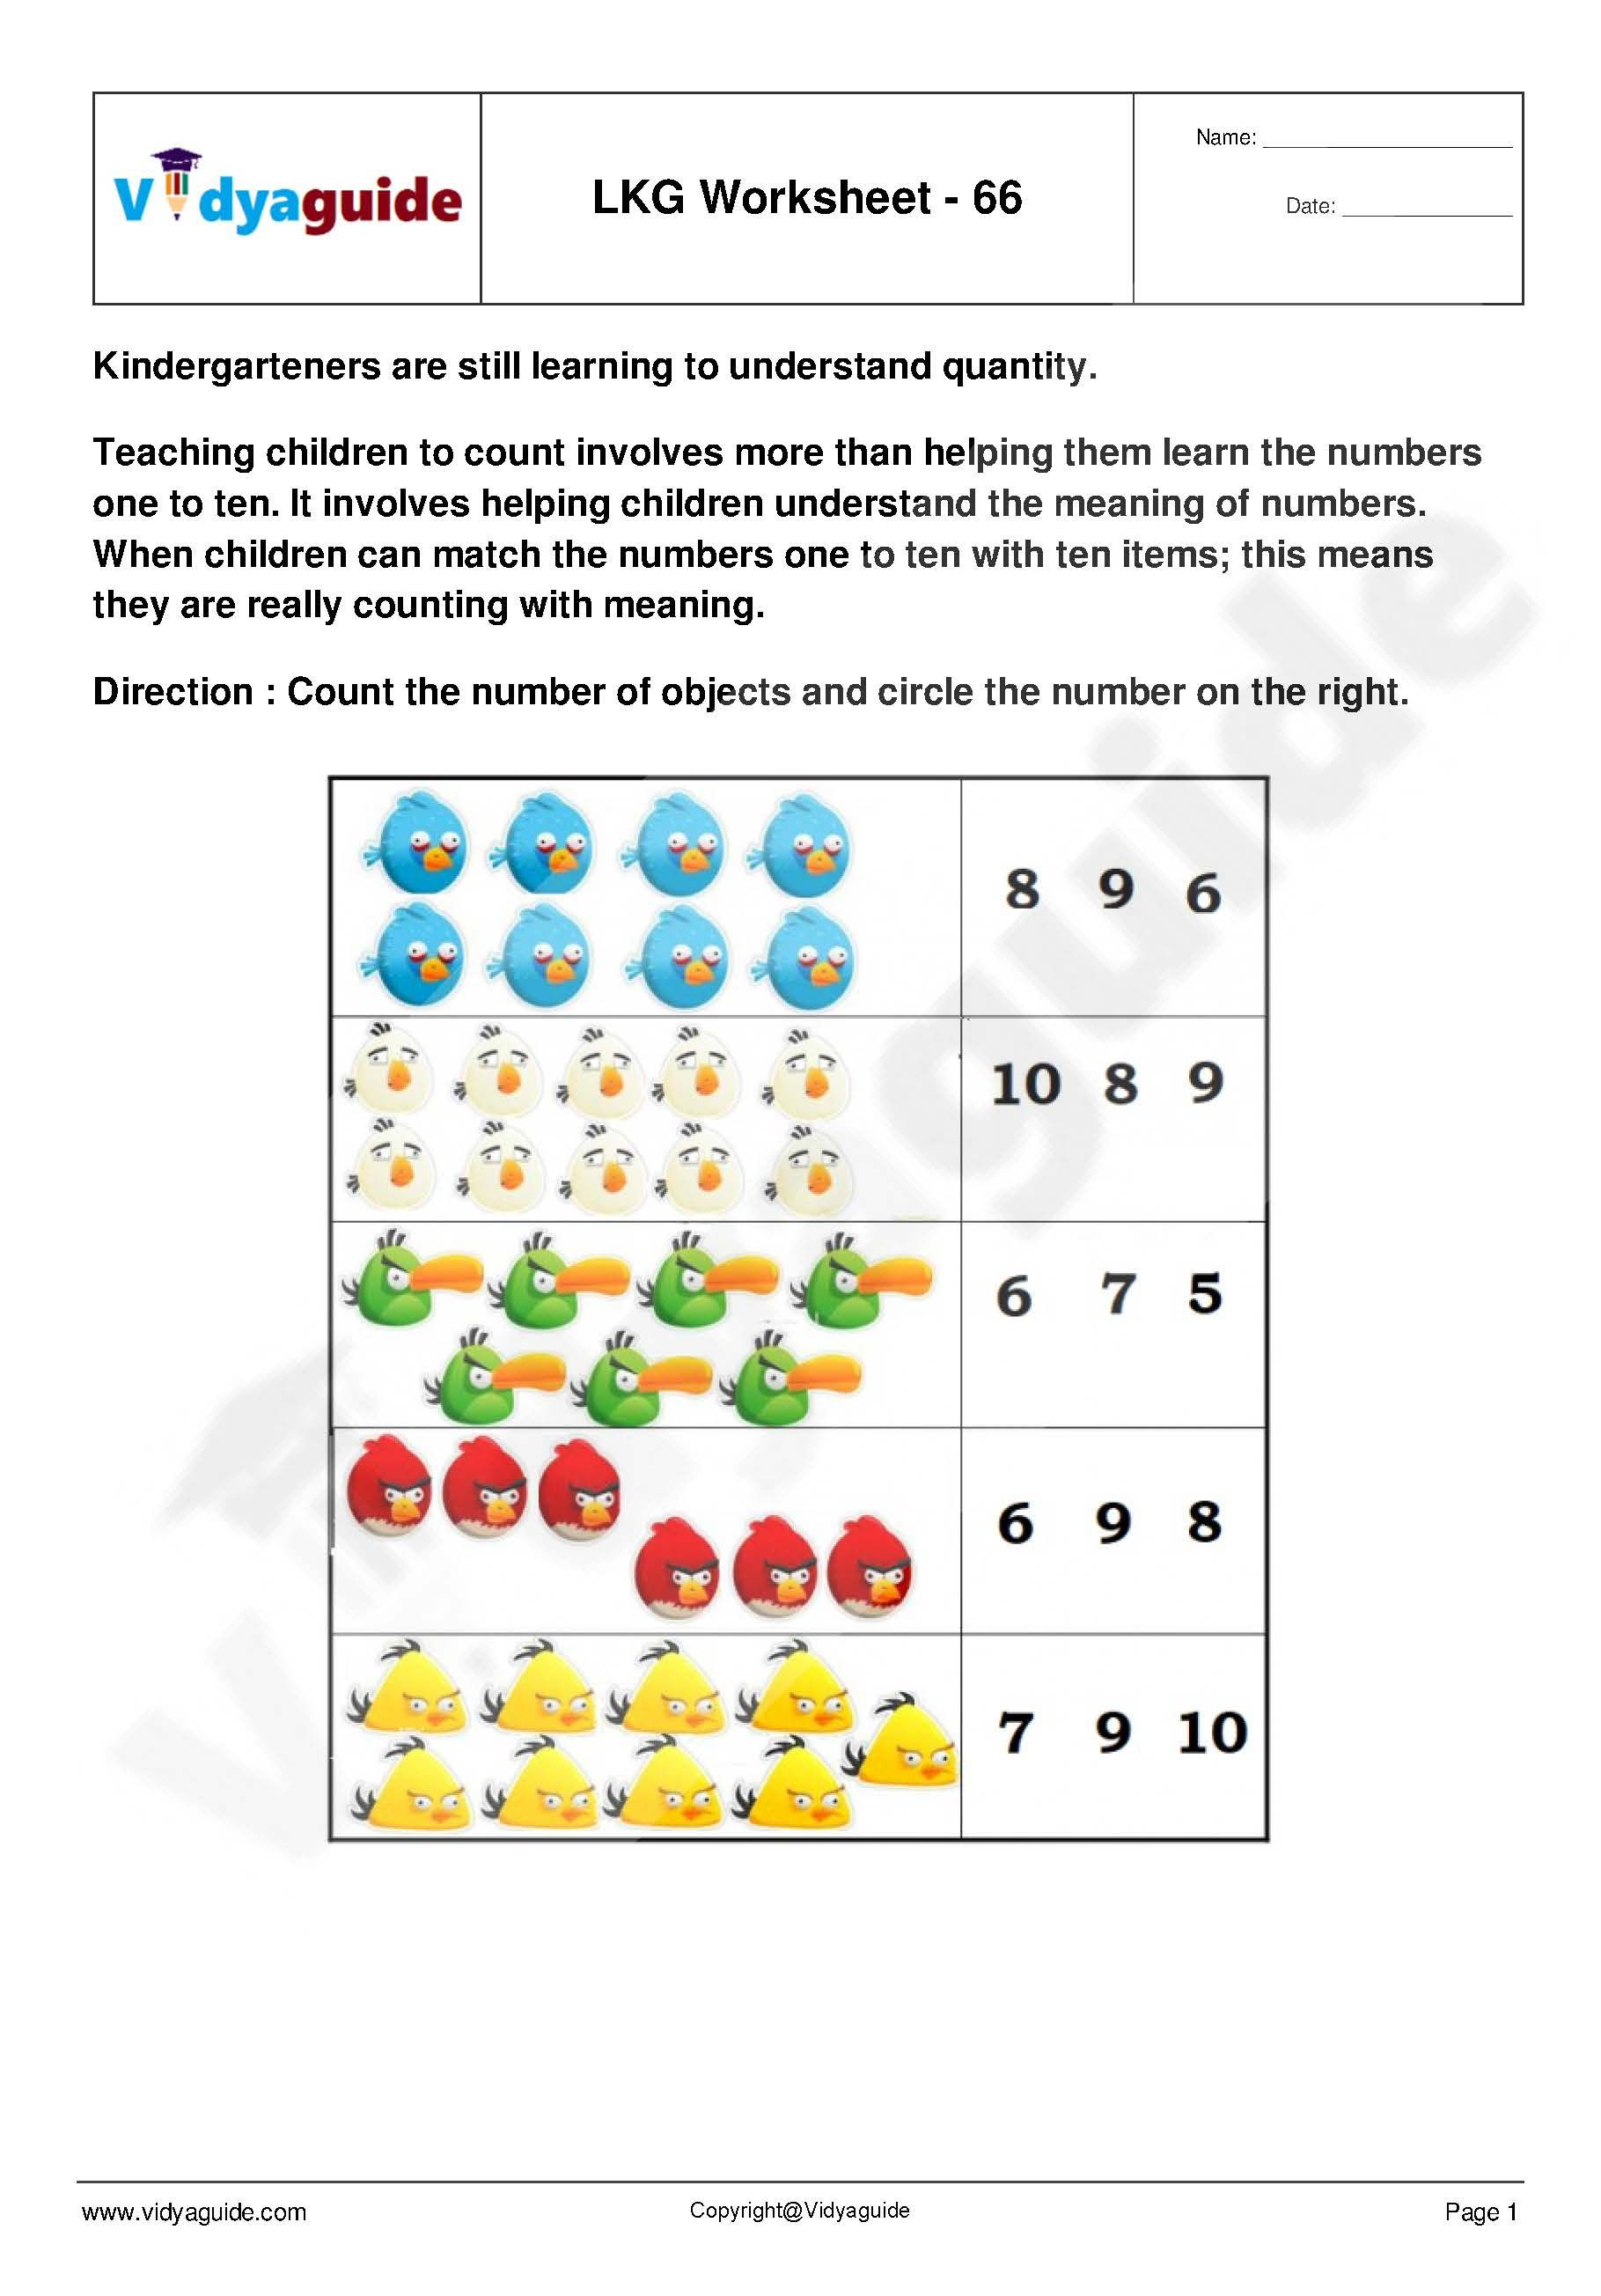 LKG Worksheets Set 14 Download 5 Lower kindergarten (LKG